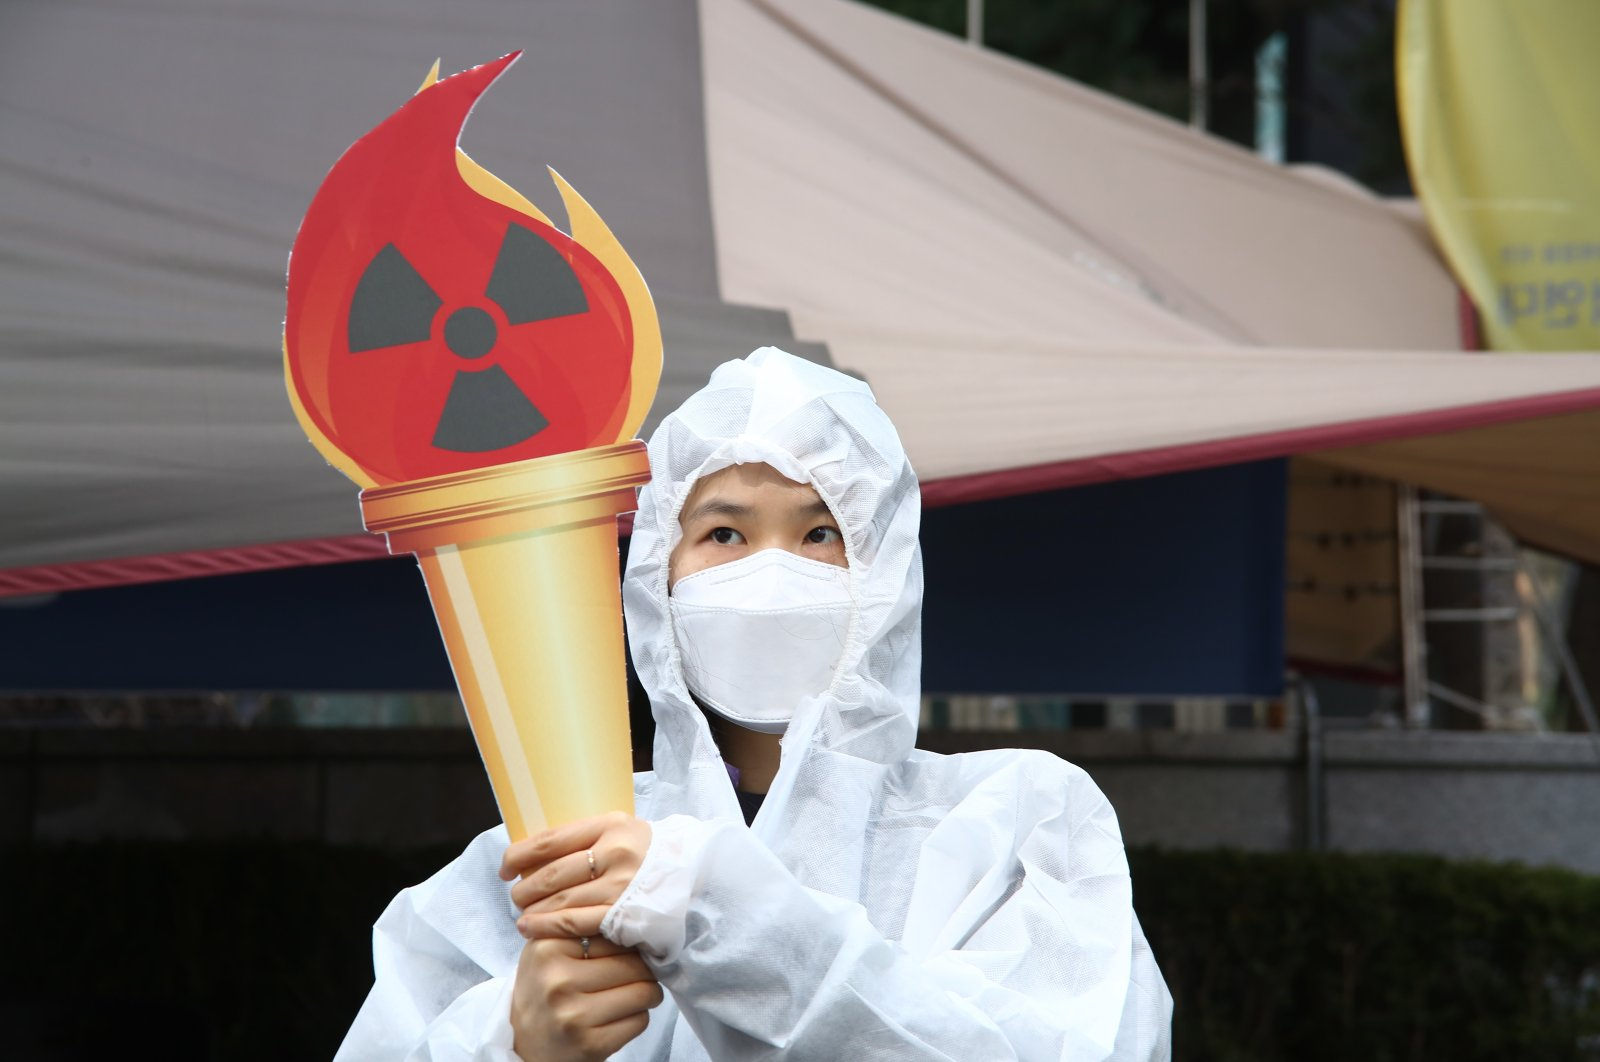 A member of an environmental group wearing a mock hazmat suit protests against Tokyo Olympics near the Japanese embassy in Seoul, South Korea, March 25, 2021. (EPA Photo)